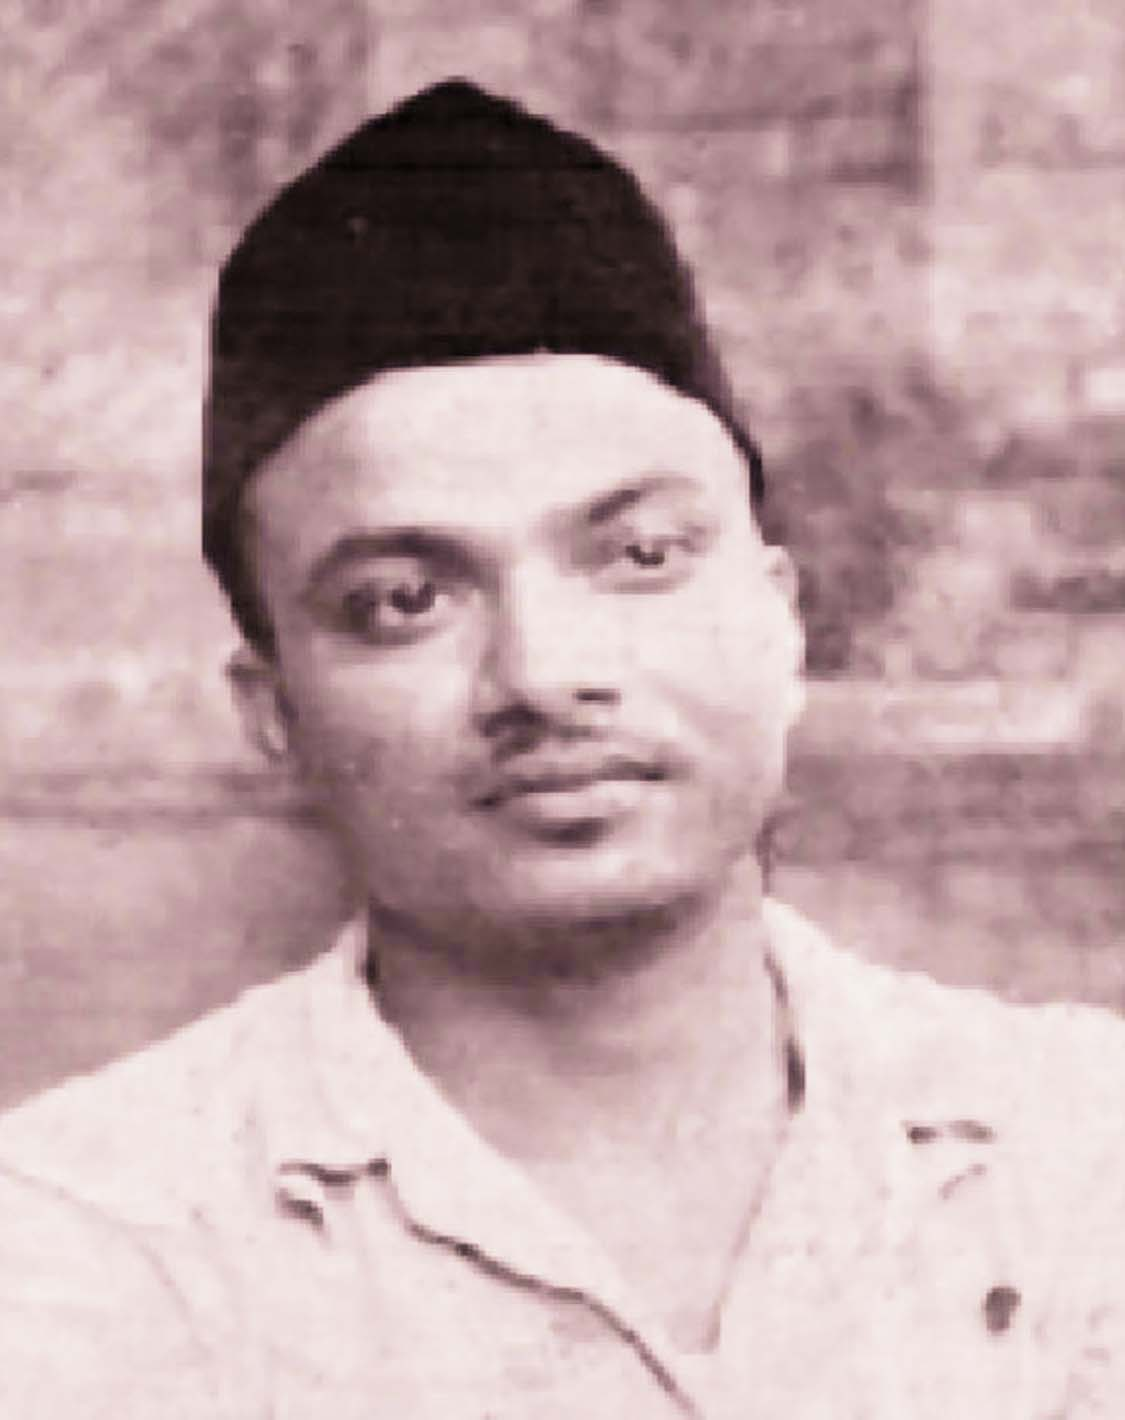 Abul Kashem felt the need of  introducing Bengali as medium of higher education in Colleges and Universities. With his dream, he established the Bangla College at Mirpur, Dhaka in 1962 and served the College as Principal till 1981. He was the forerunner in introducing textbooks in Bengali for higher  education and contributed much in initiating the Bengali version of the question papers for higher education.